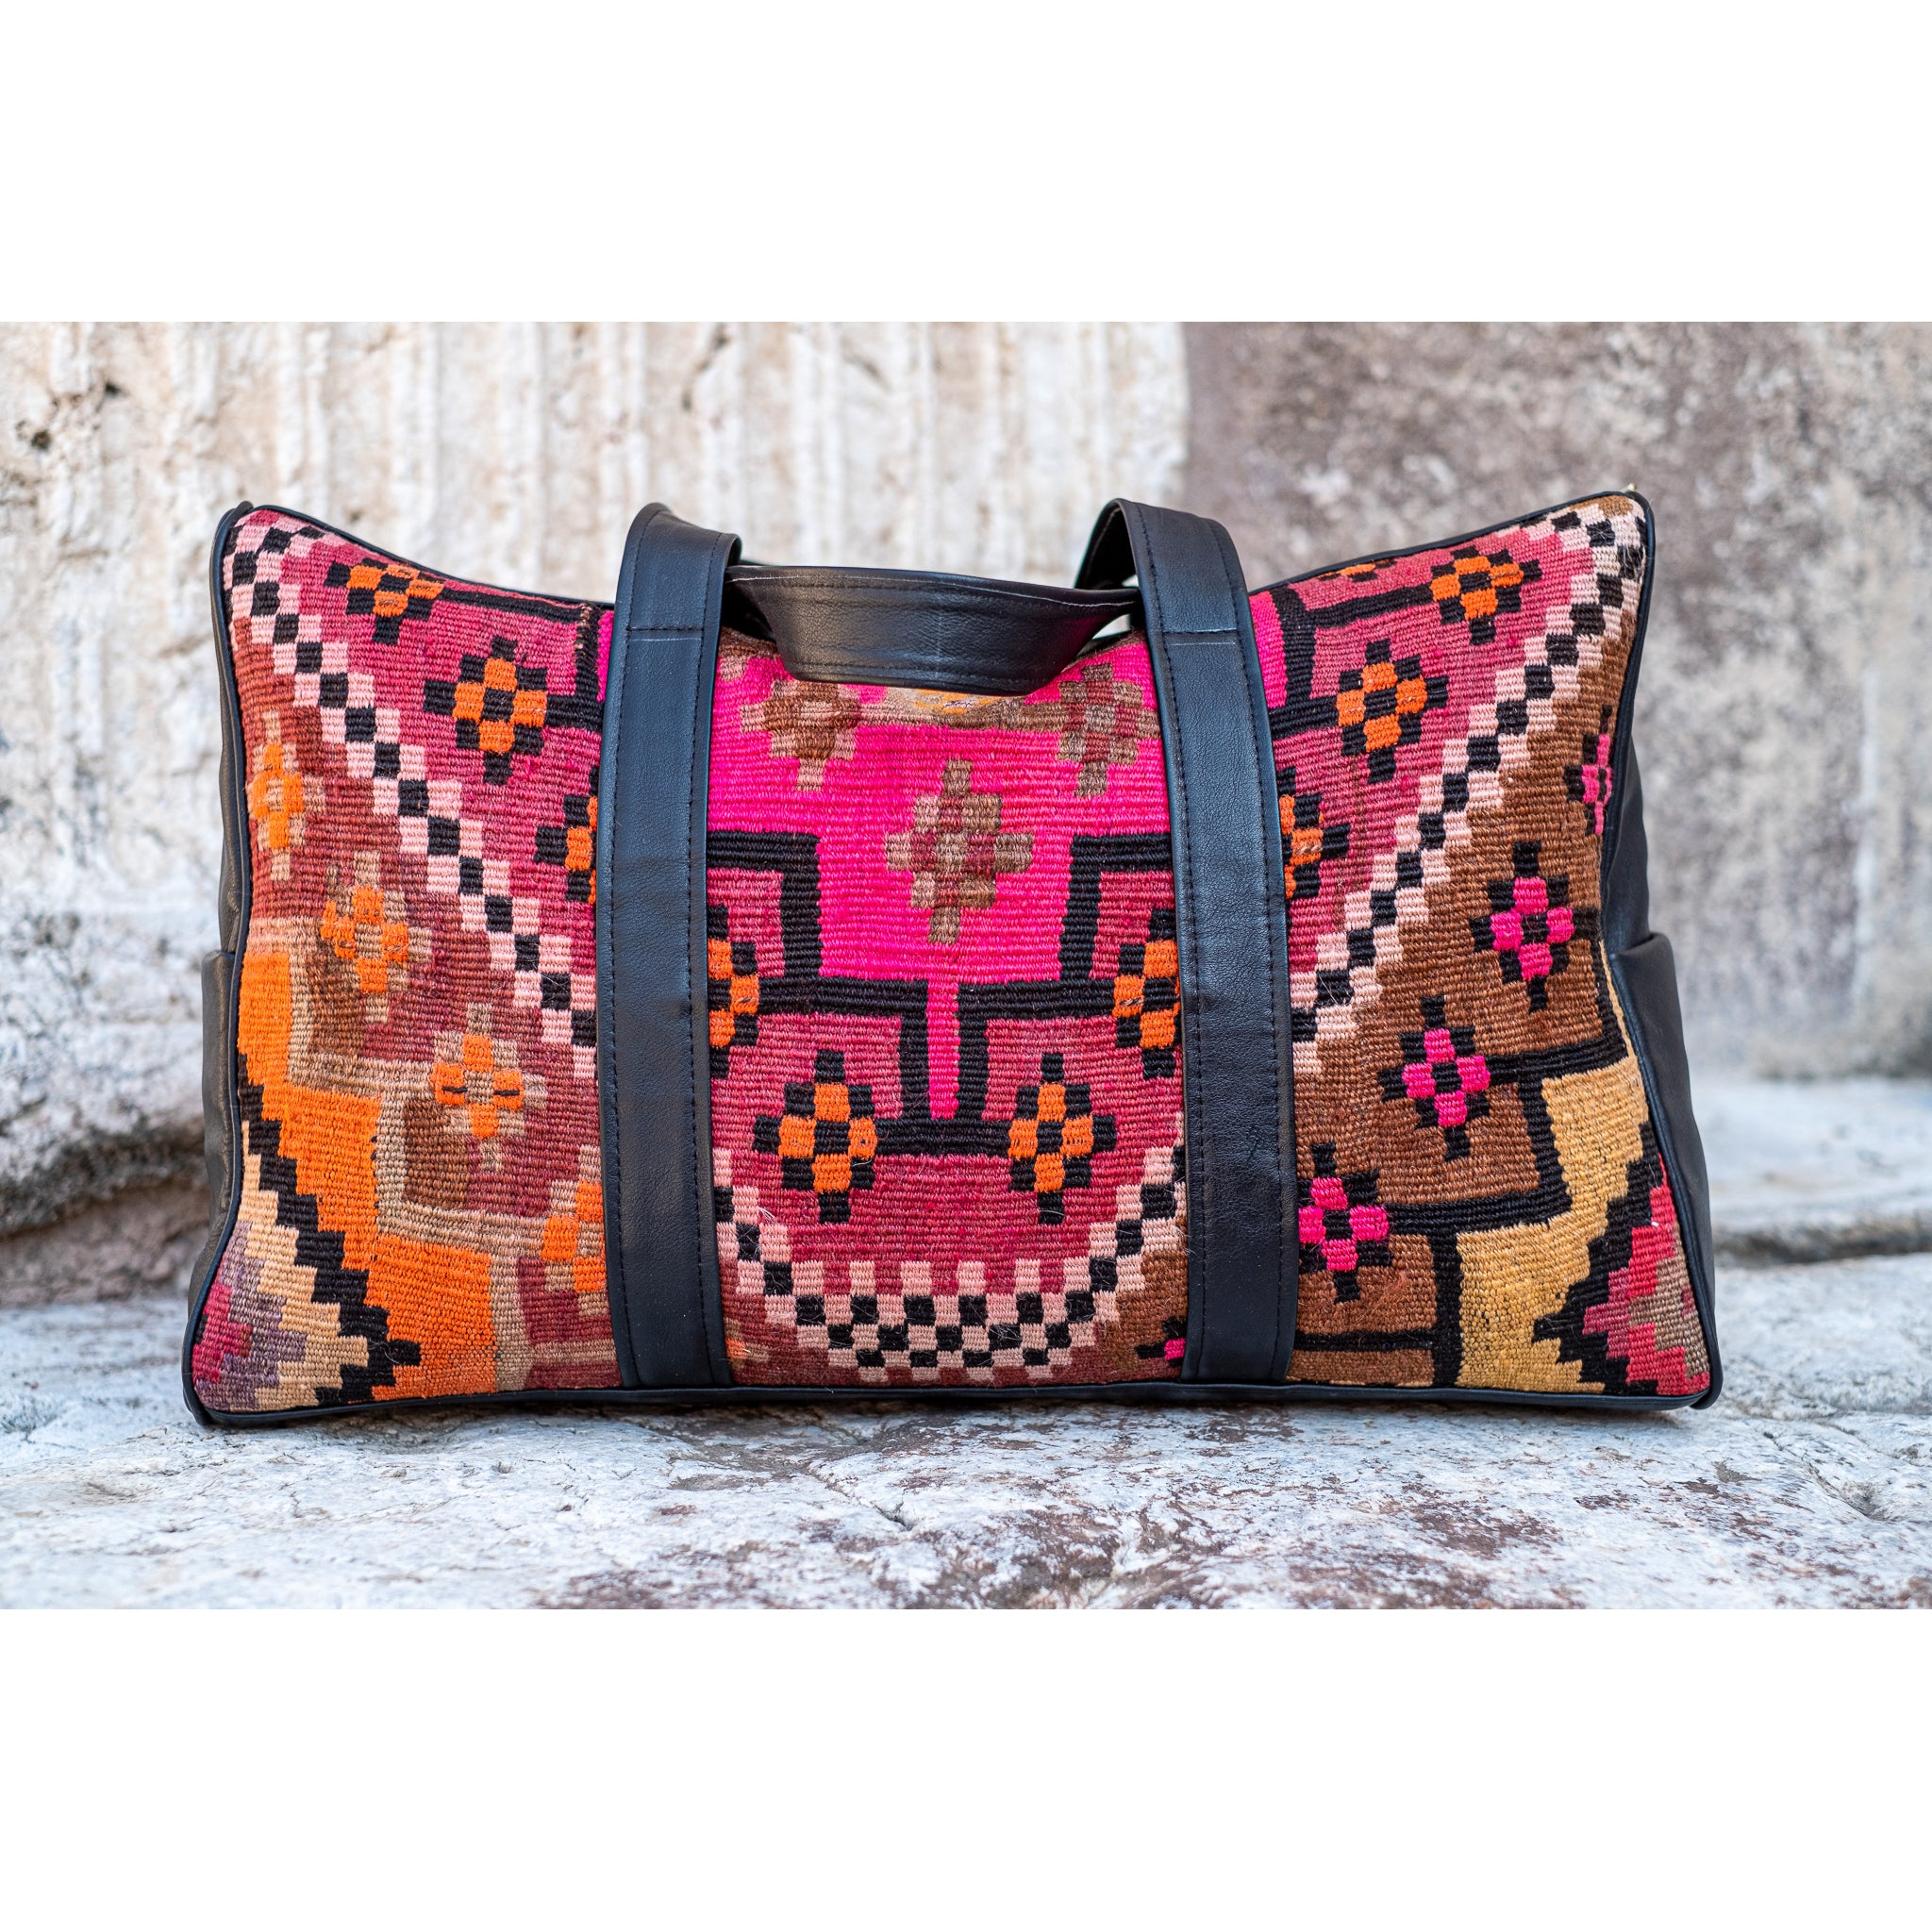 Kilim & Leather Overnight Bag #43 (w/ side pockets)